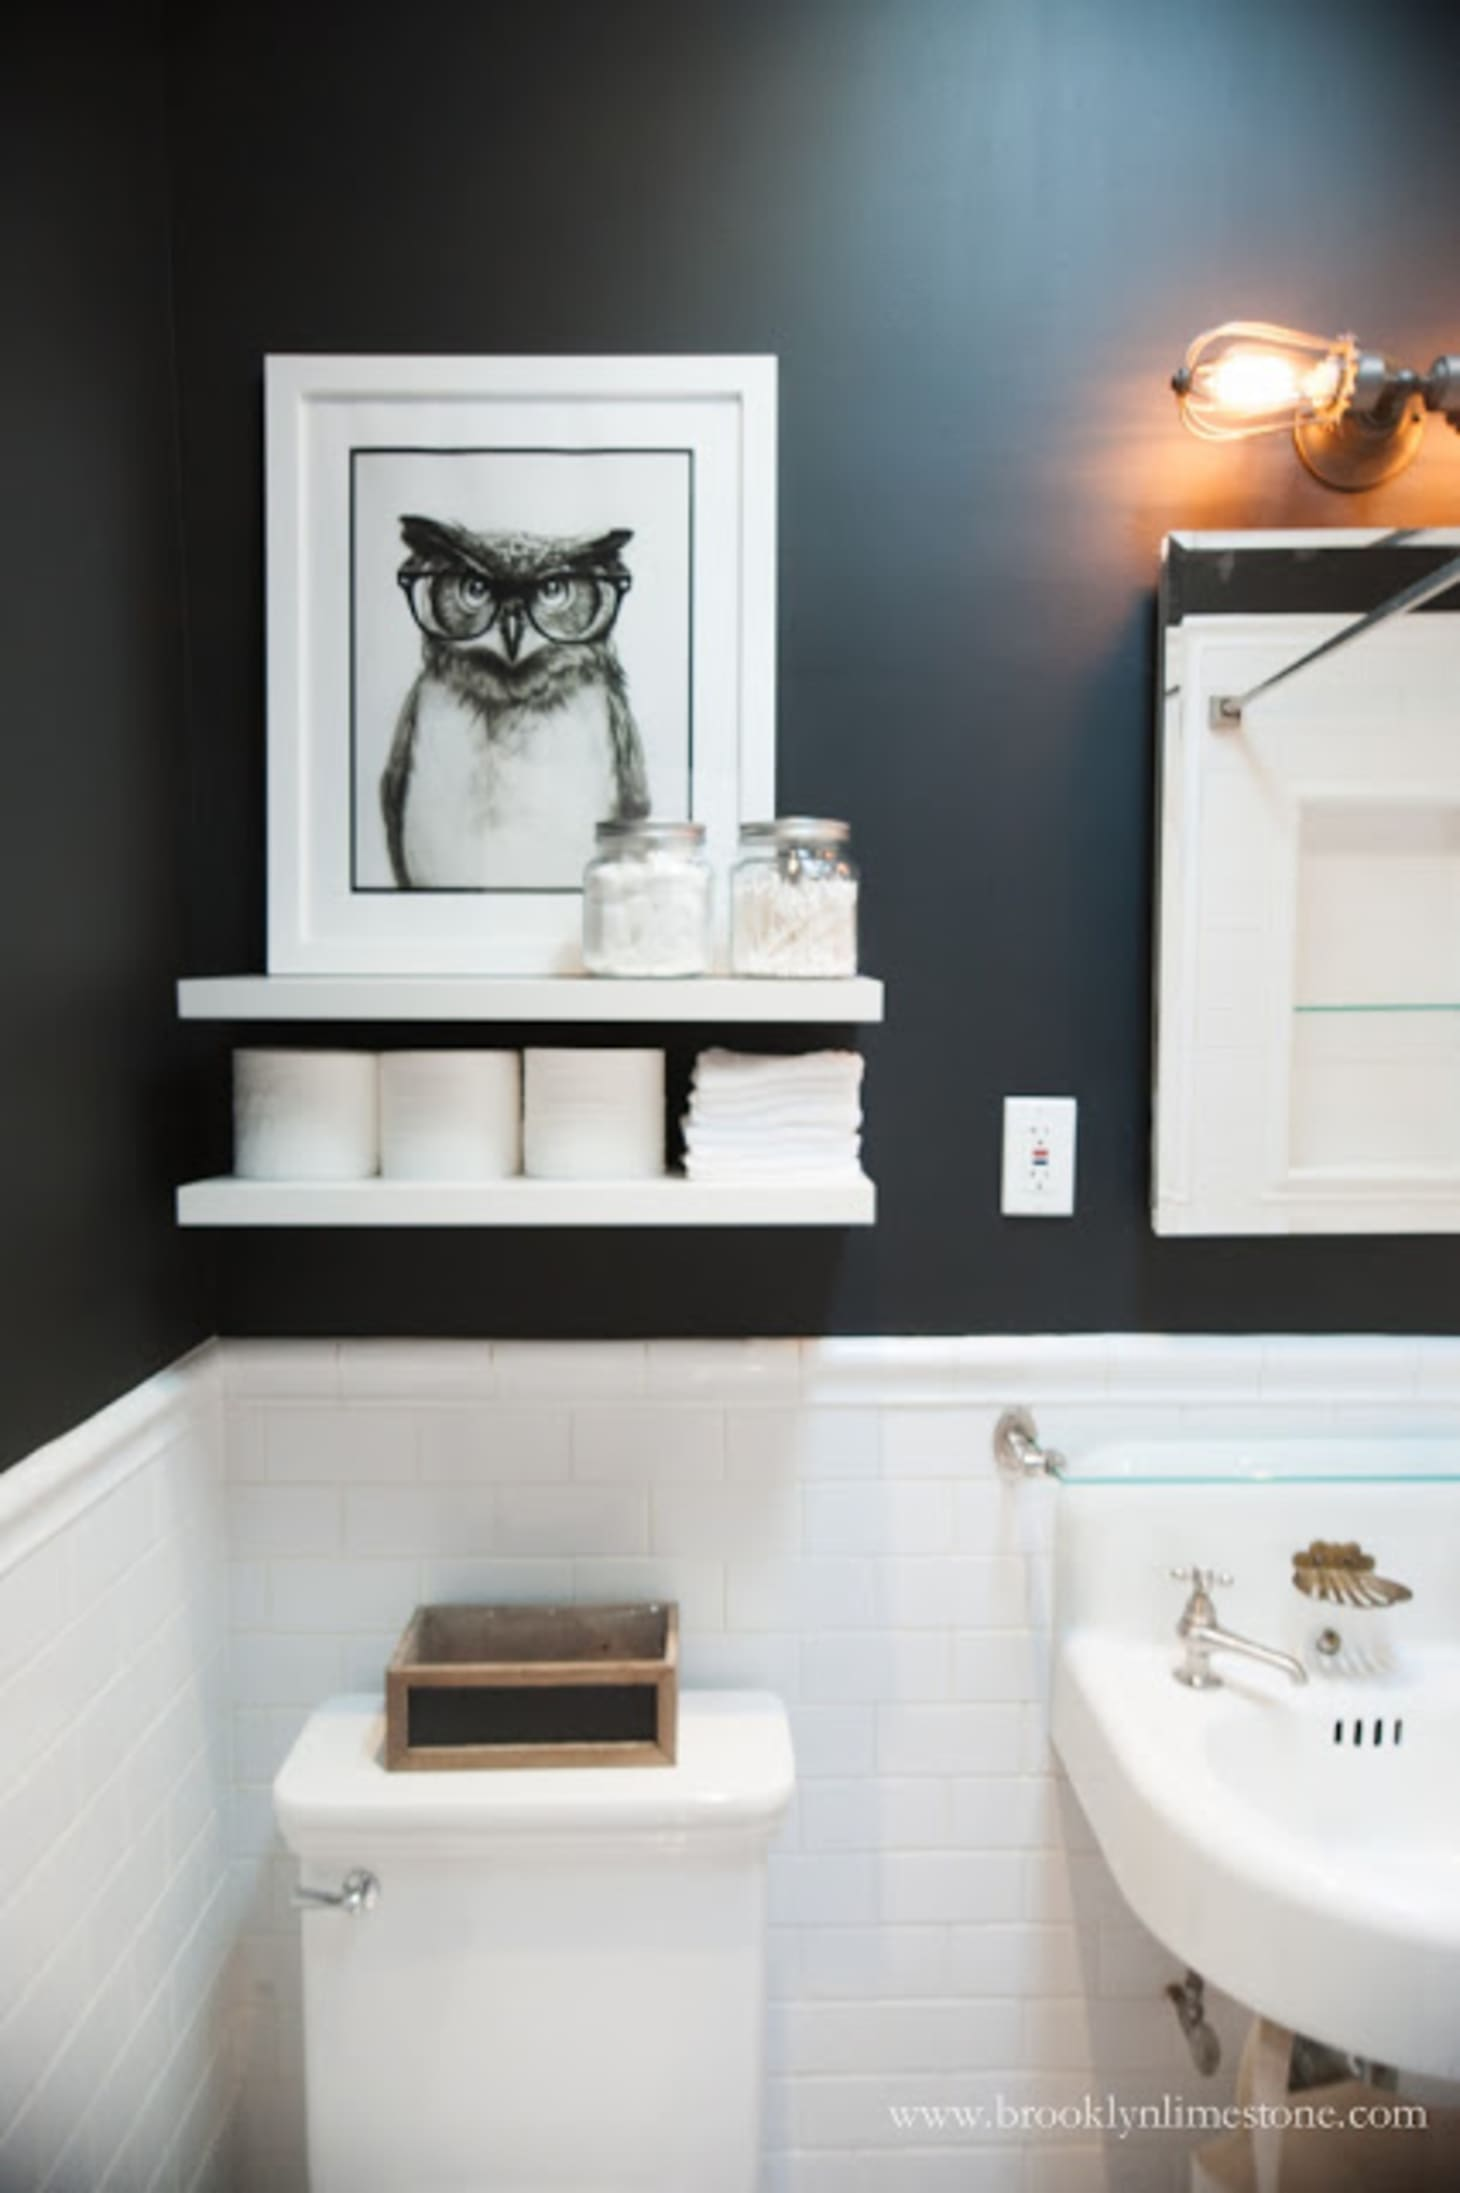 Toilet Paper Storage Ideas for a Small Bathroom | Apartment